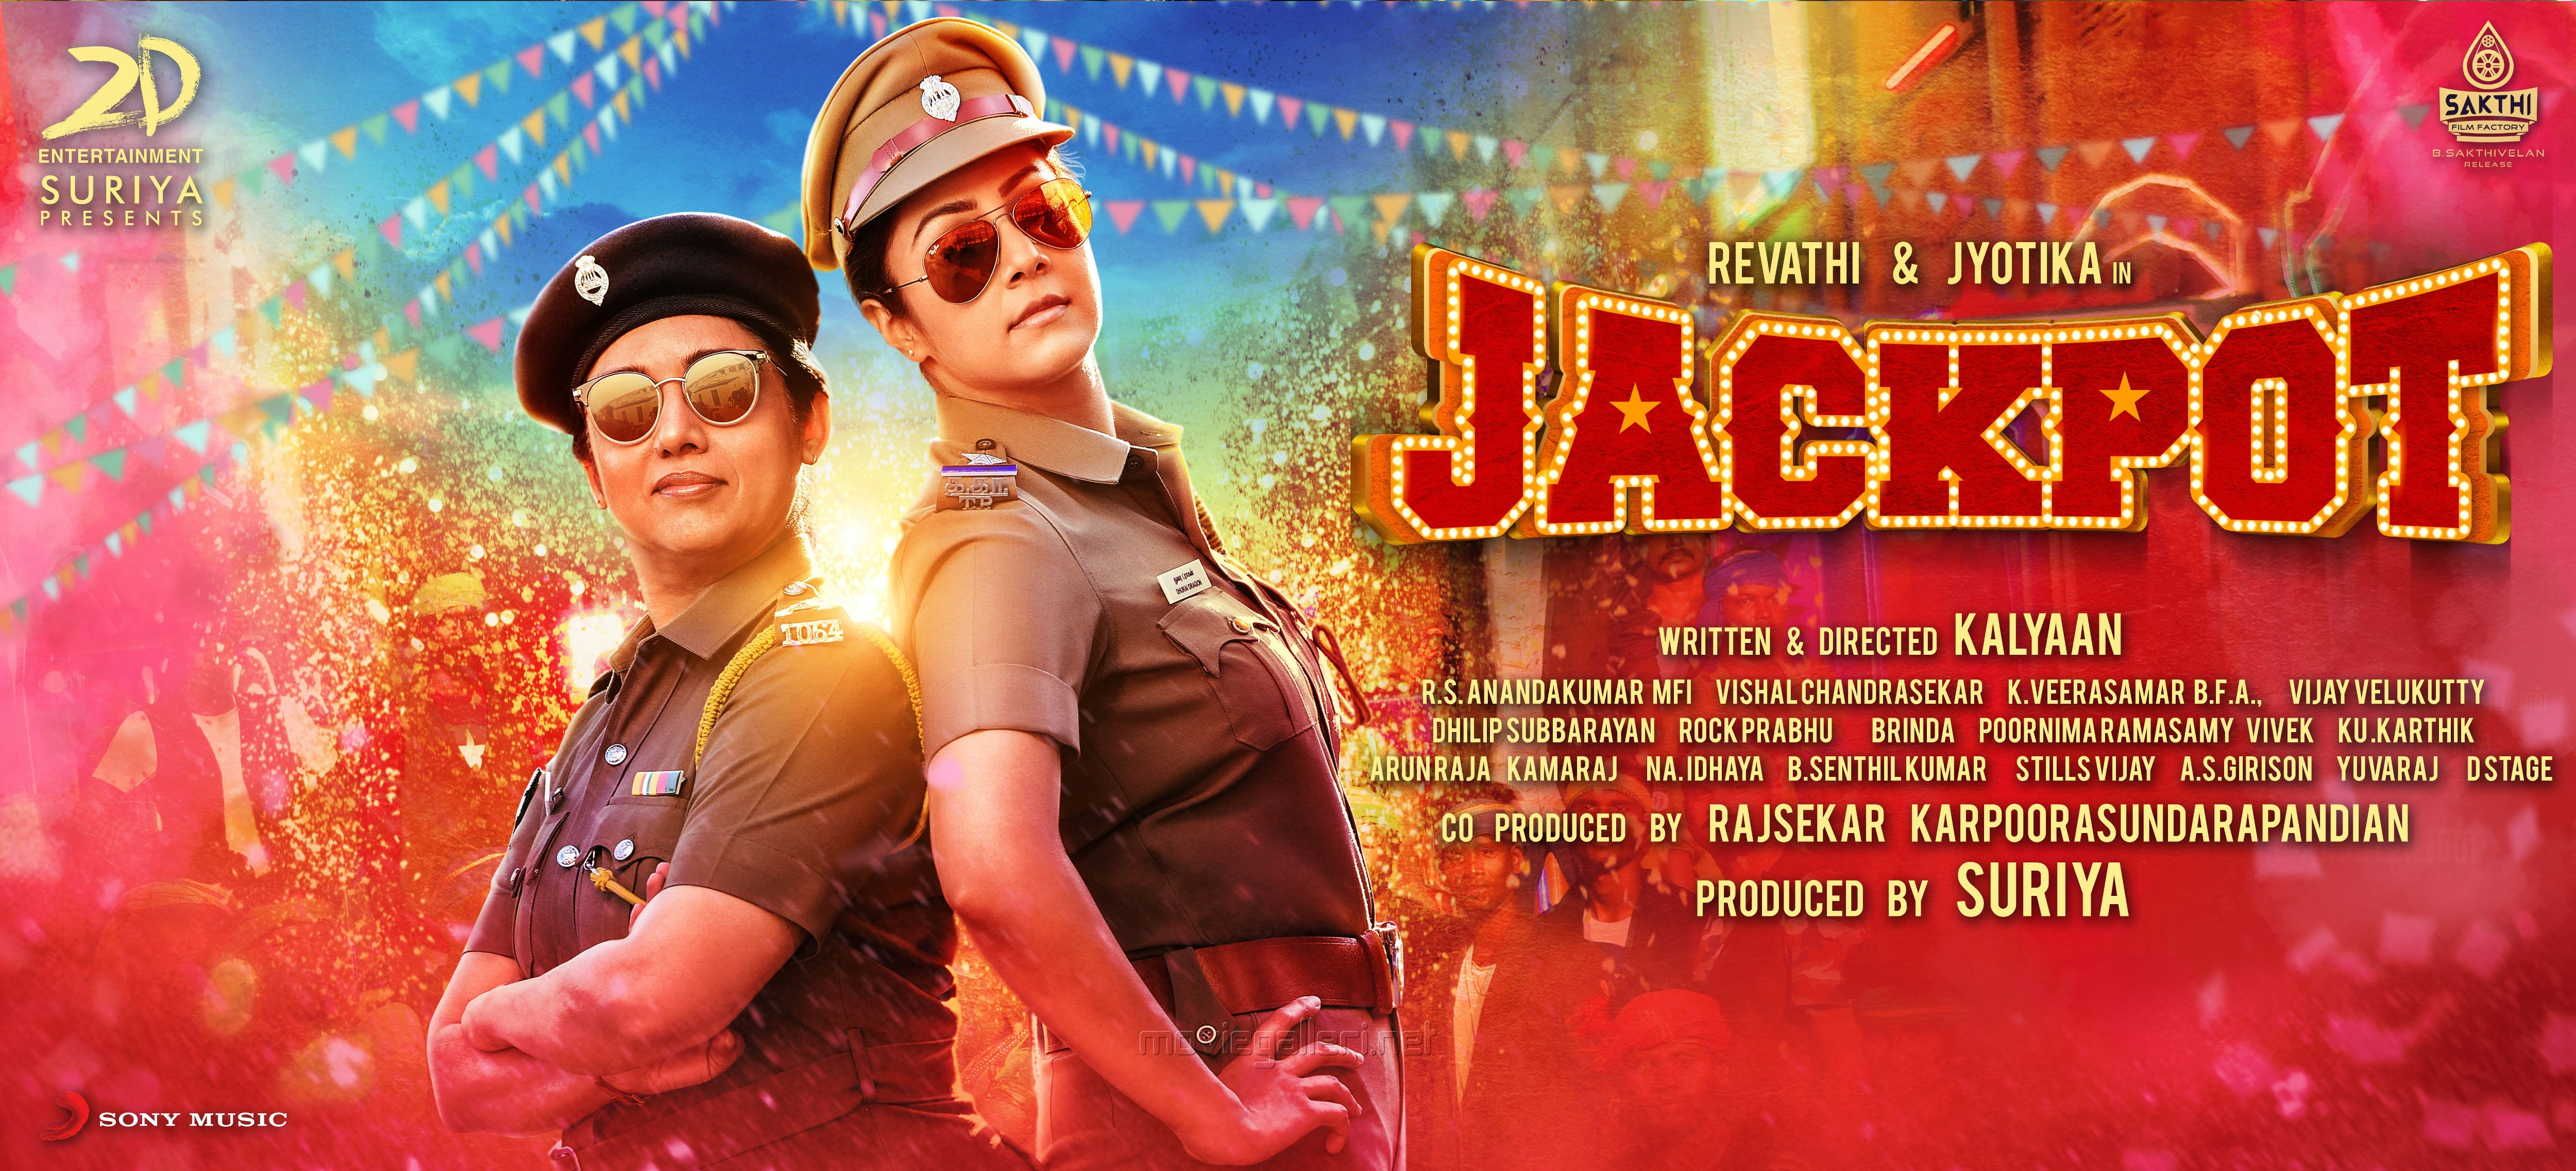 Revathy & Jyothika in Jackpot Movie First Look Wallpaper HD